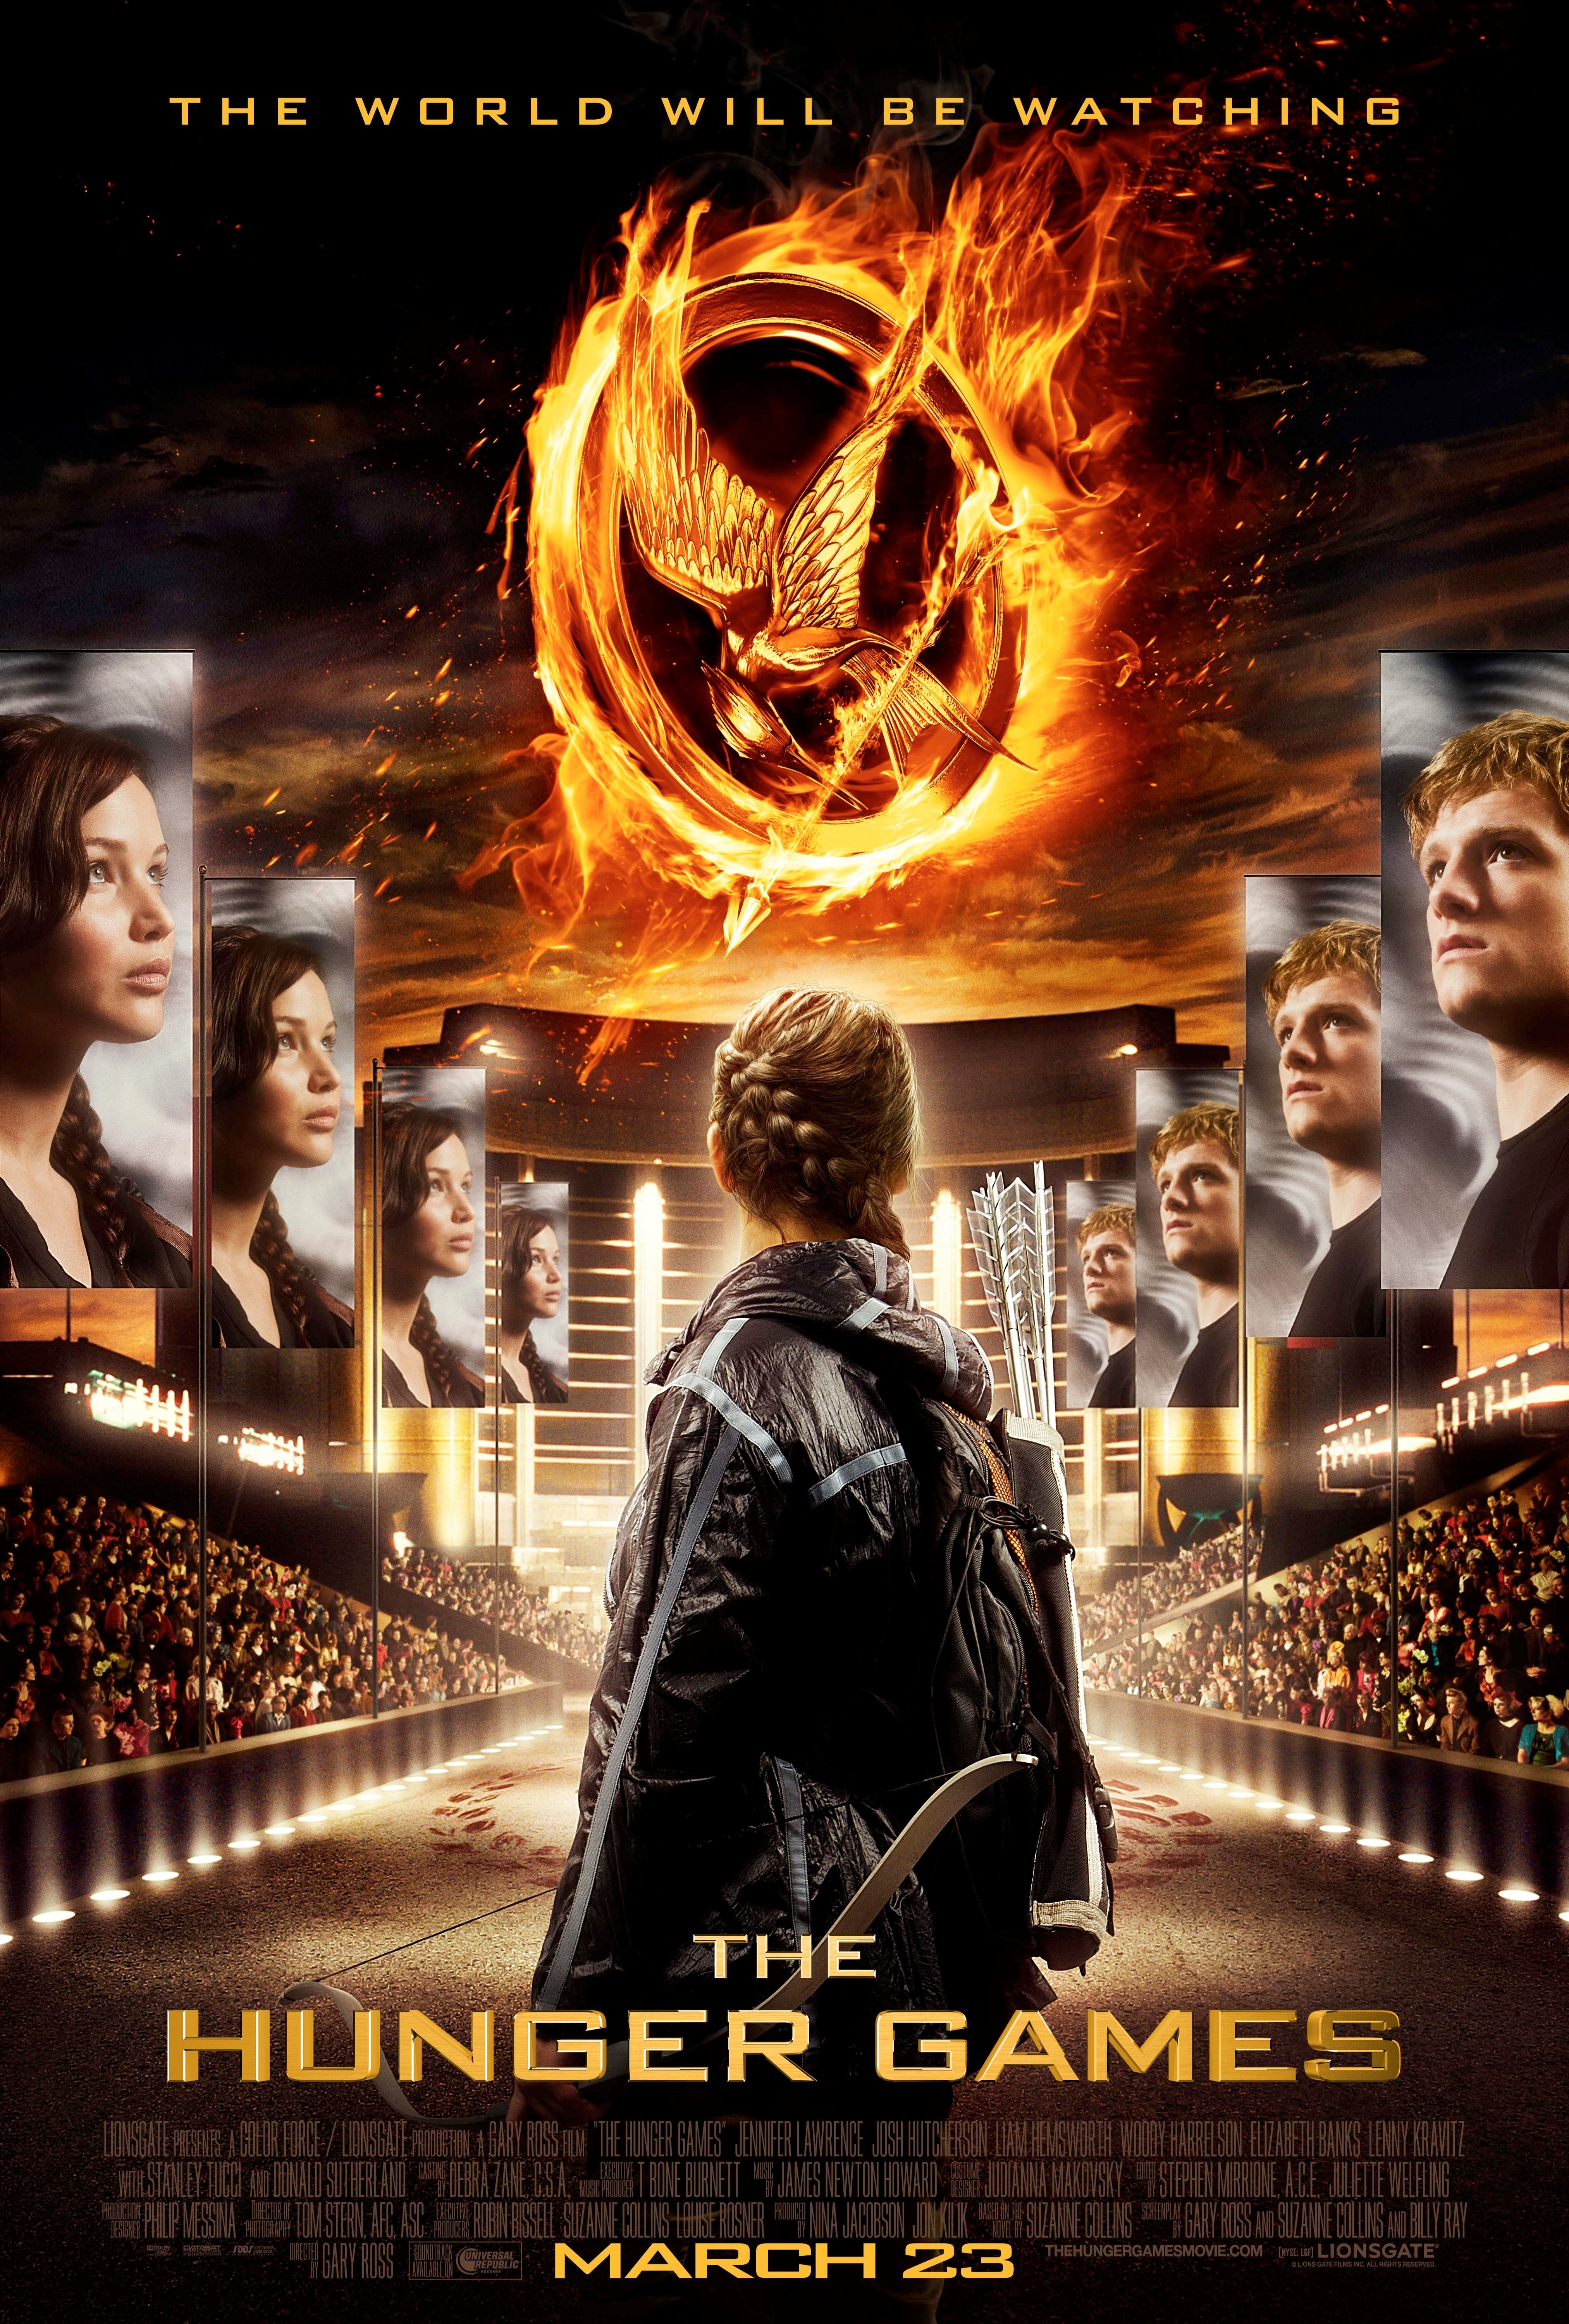 I am sure there will be midnight showings of Hunger Games - who wants to go with me????